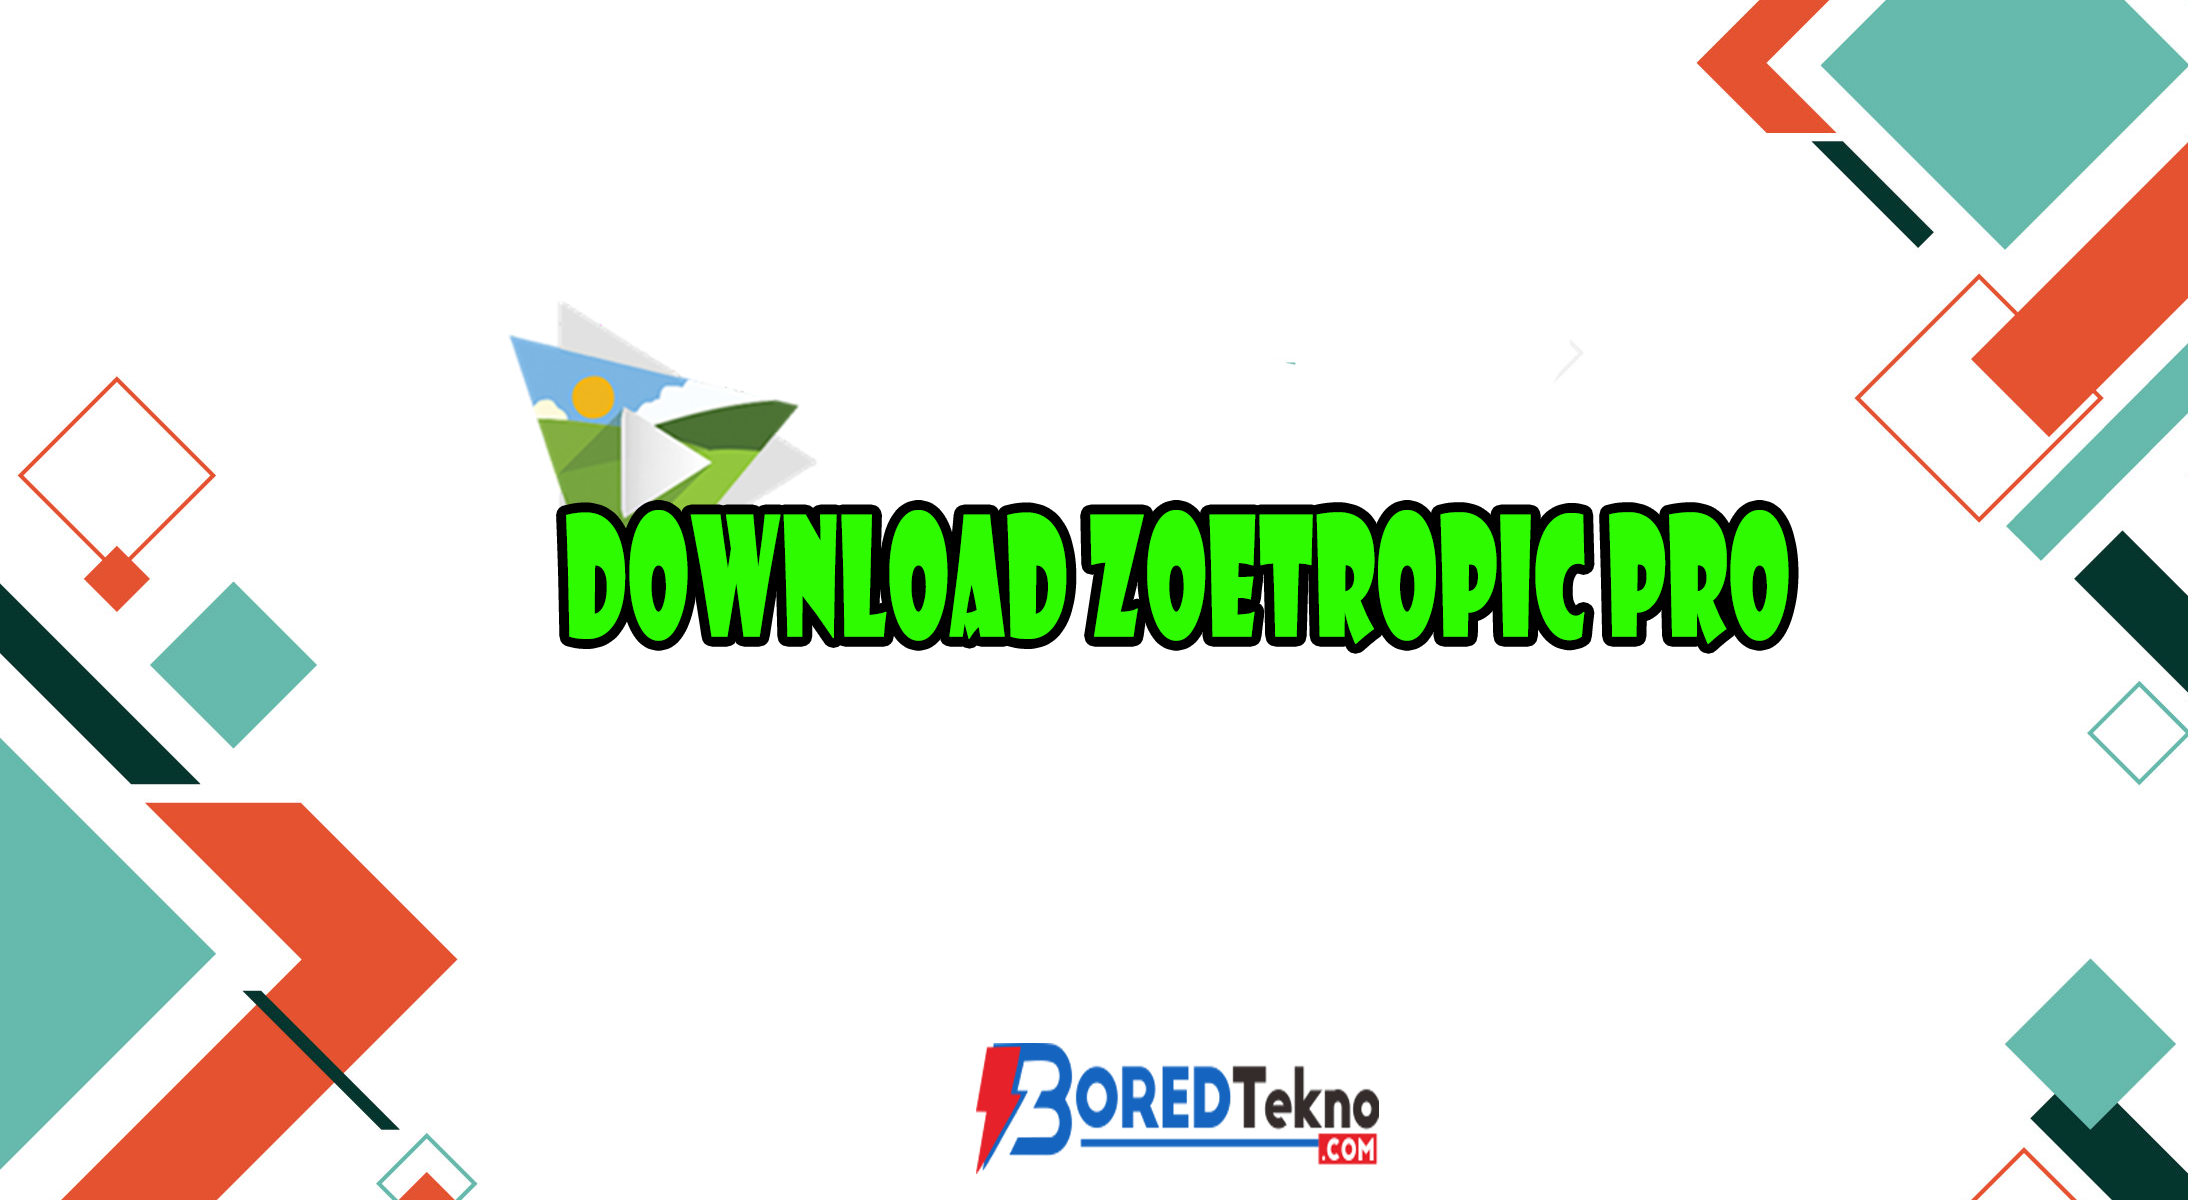 Download Zoetropic Pro